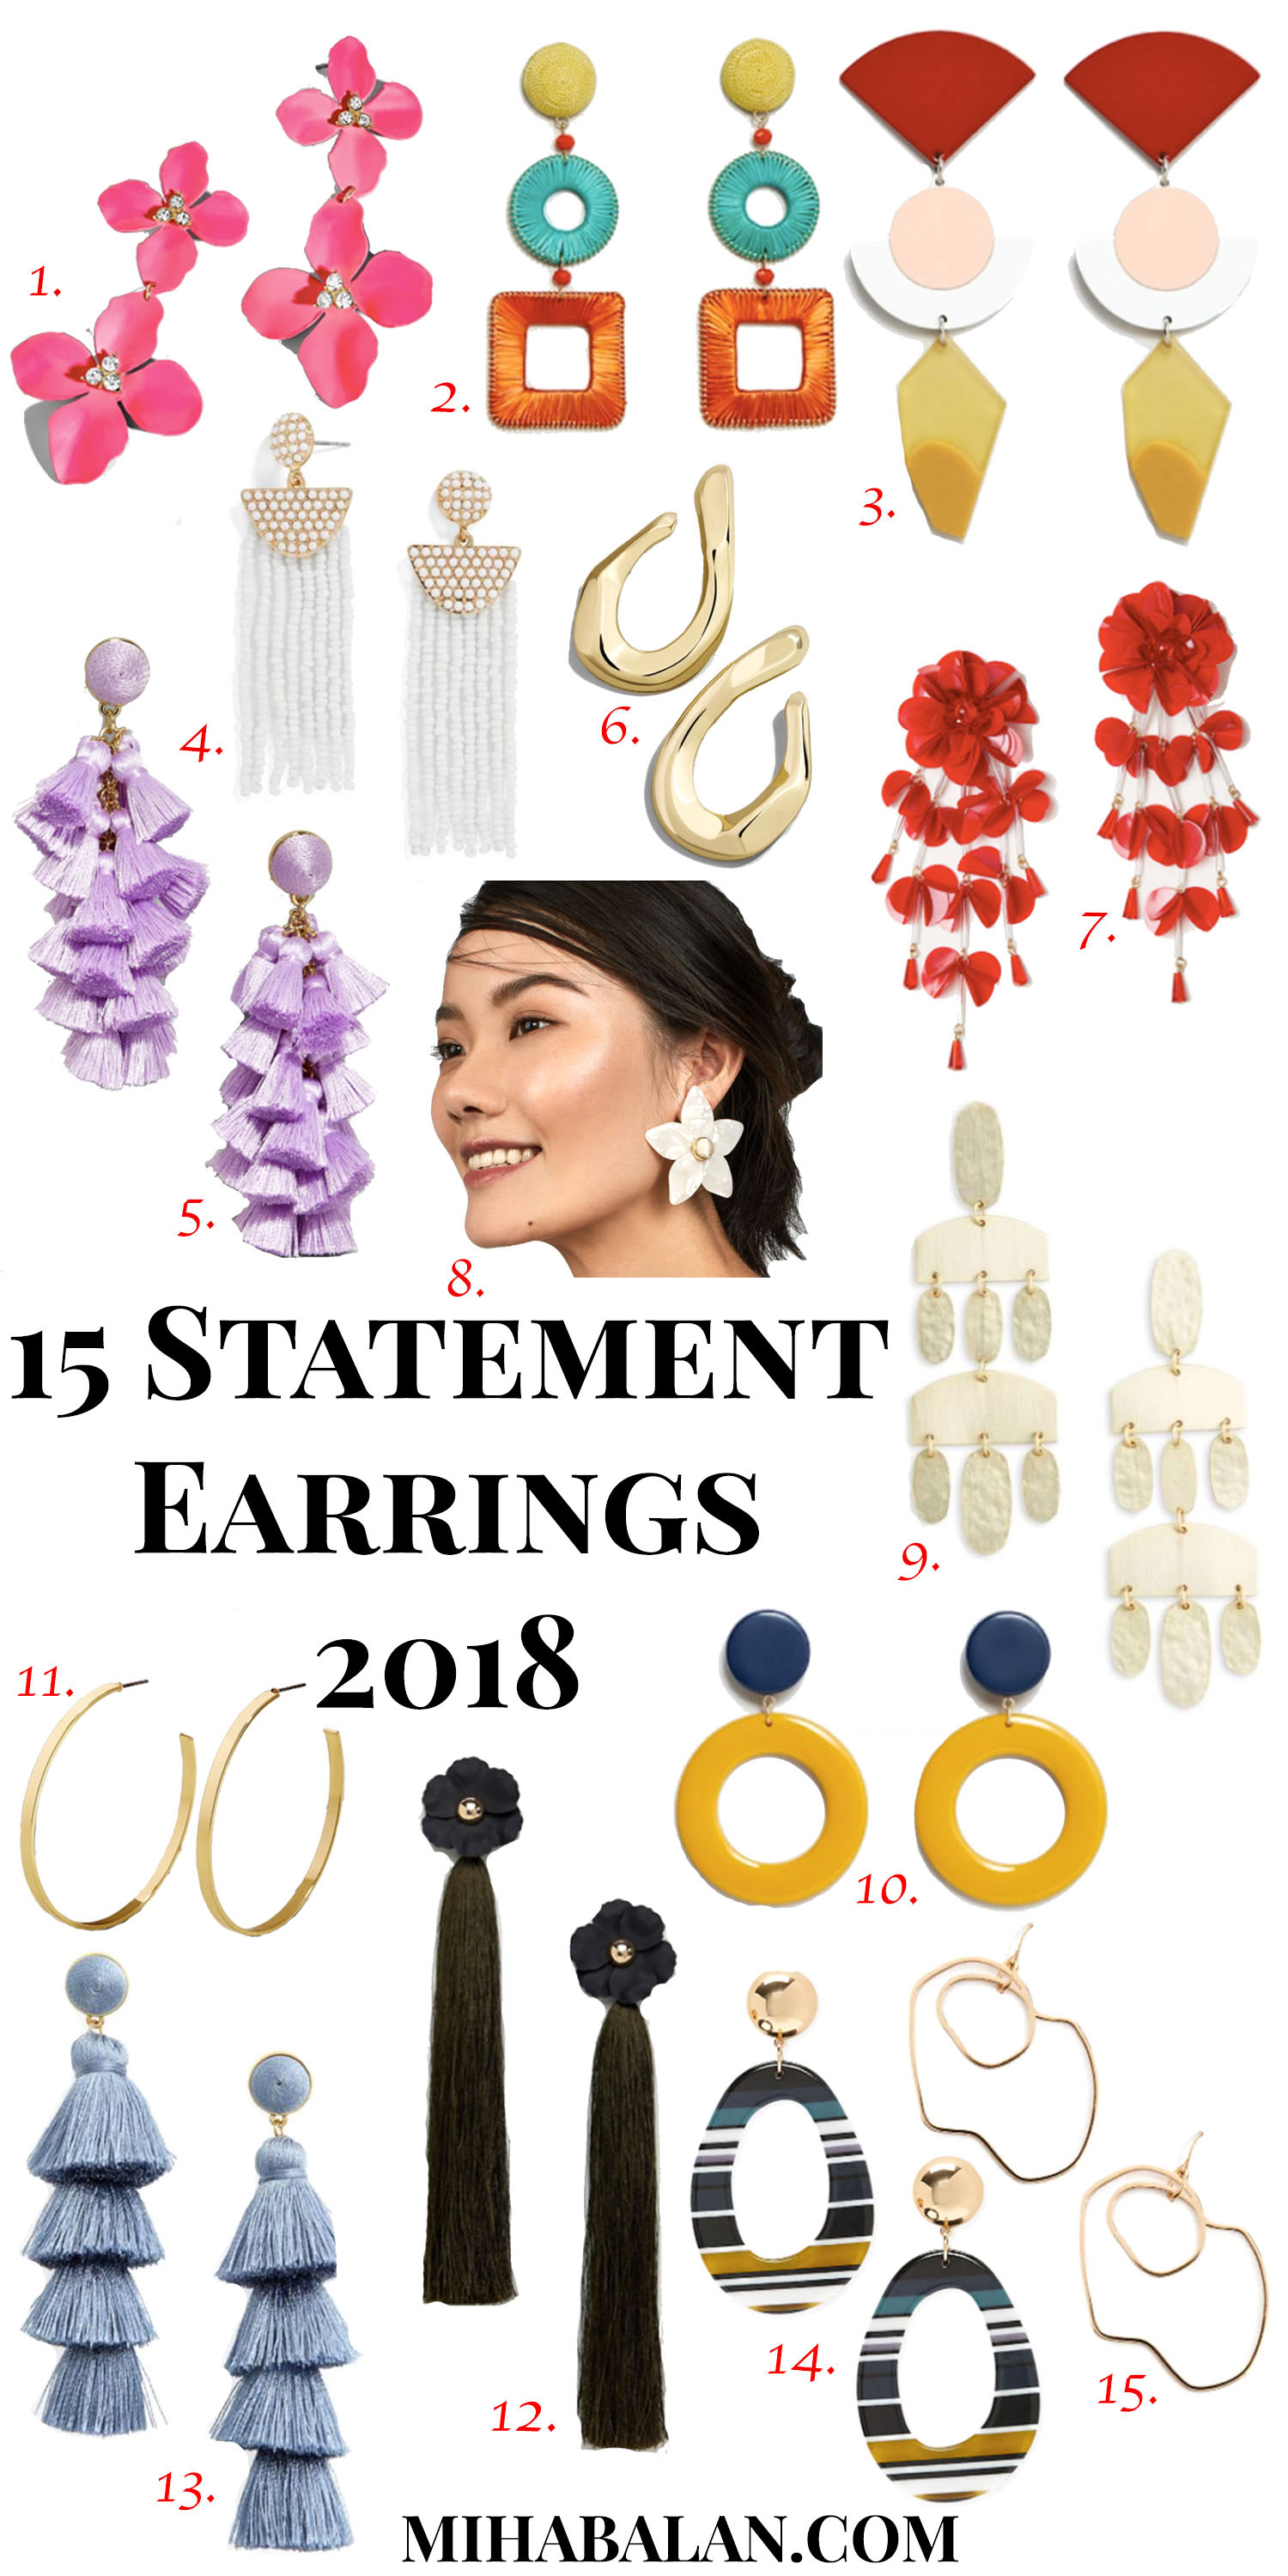 15 statement earrings, bold earrings, golden earrings, accessories, women earrings, jewellery